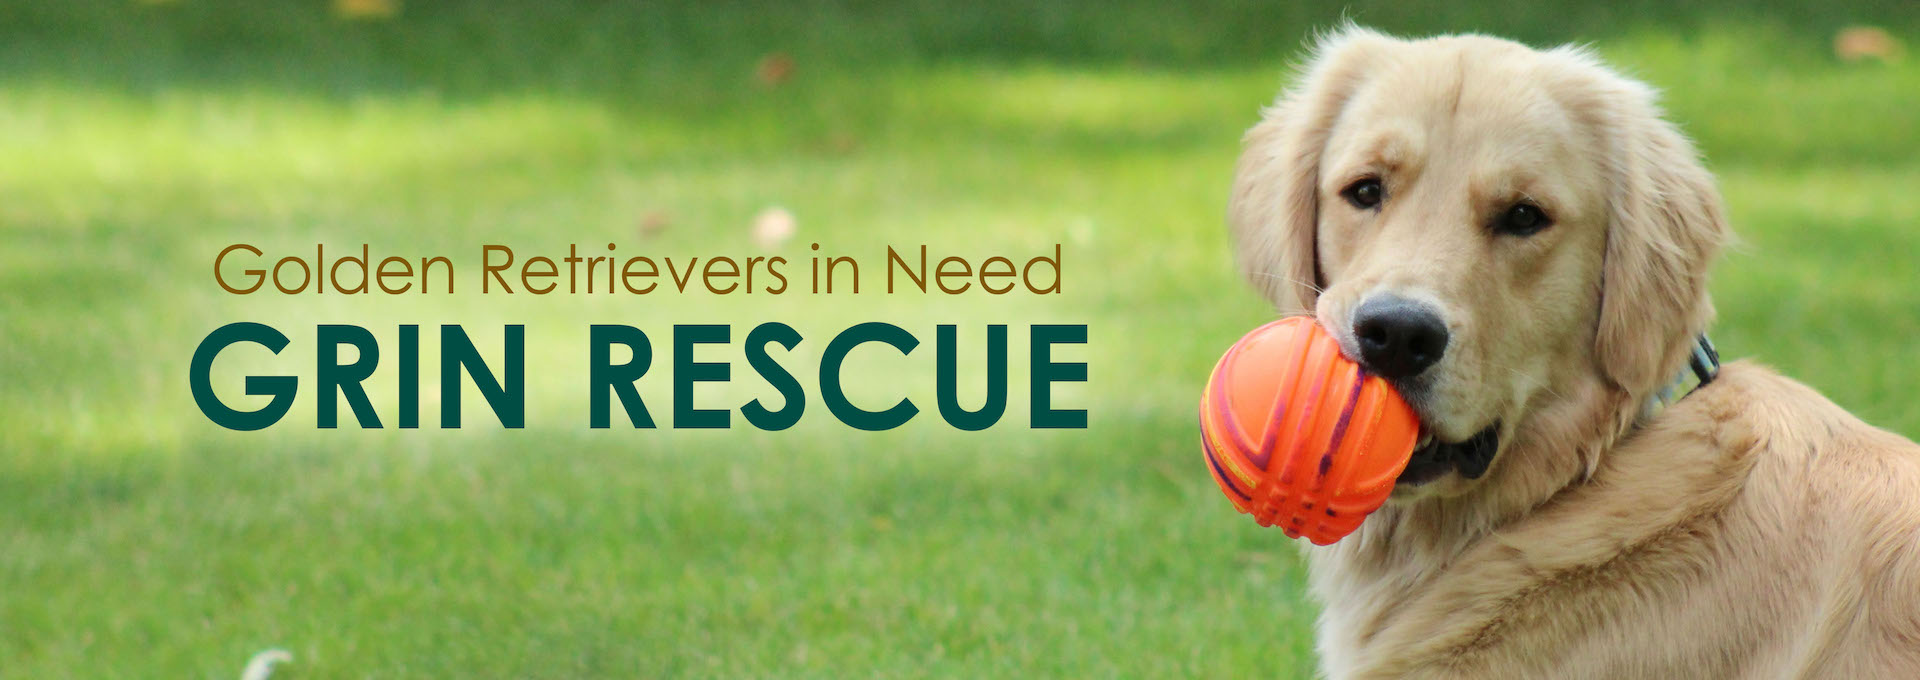 Available Goldens - Golden Retrievers in Need Rescue Service, Inc